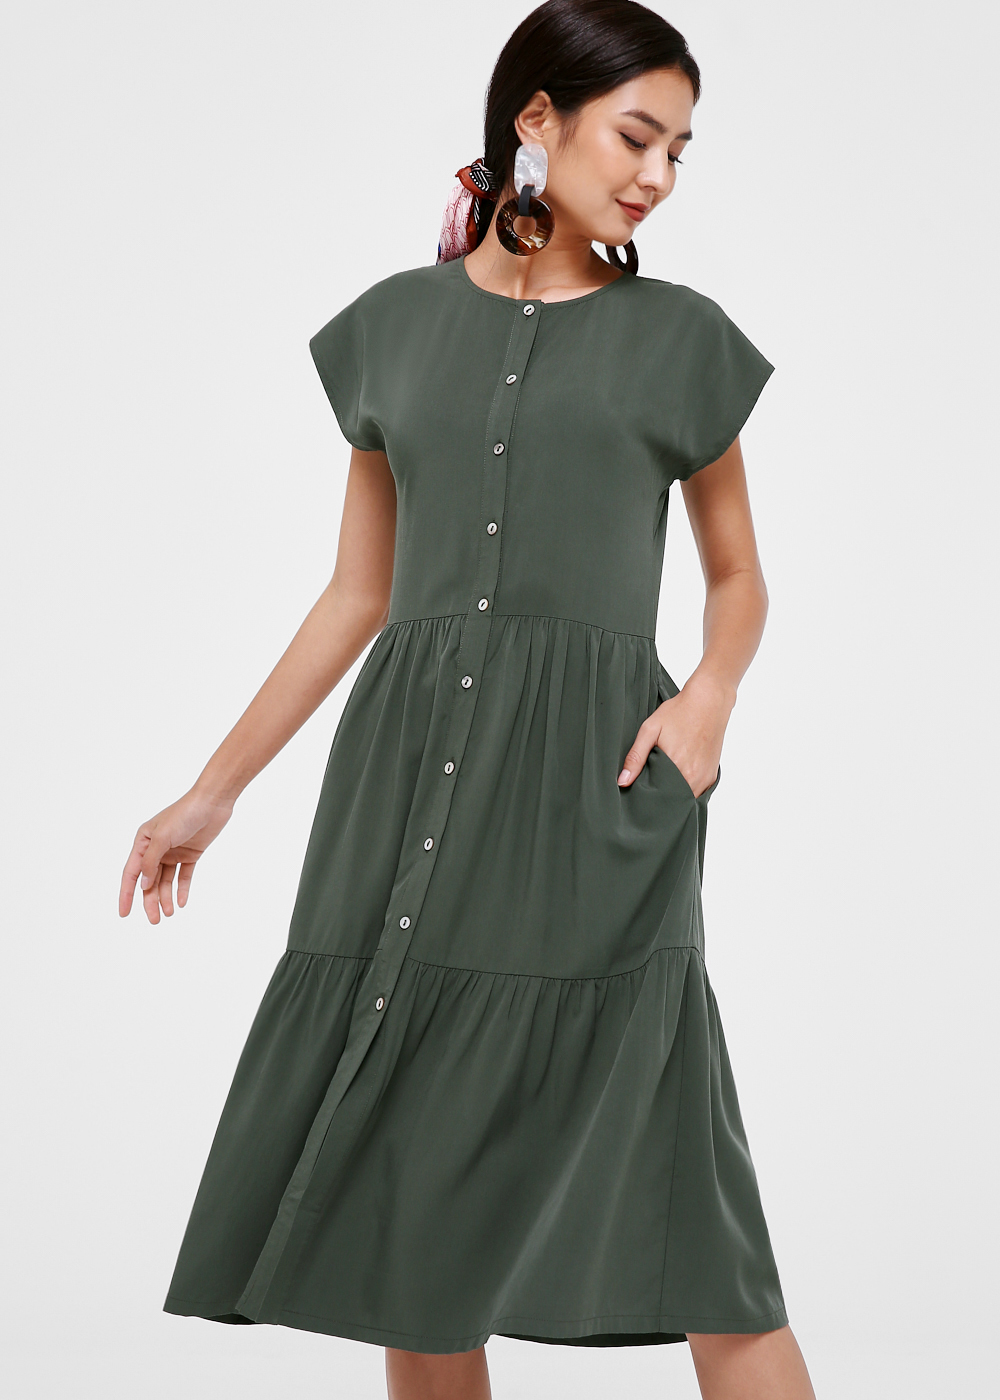 Adelynn Cap Sleeve Button Down Dress